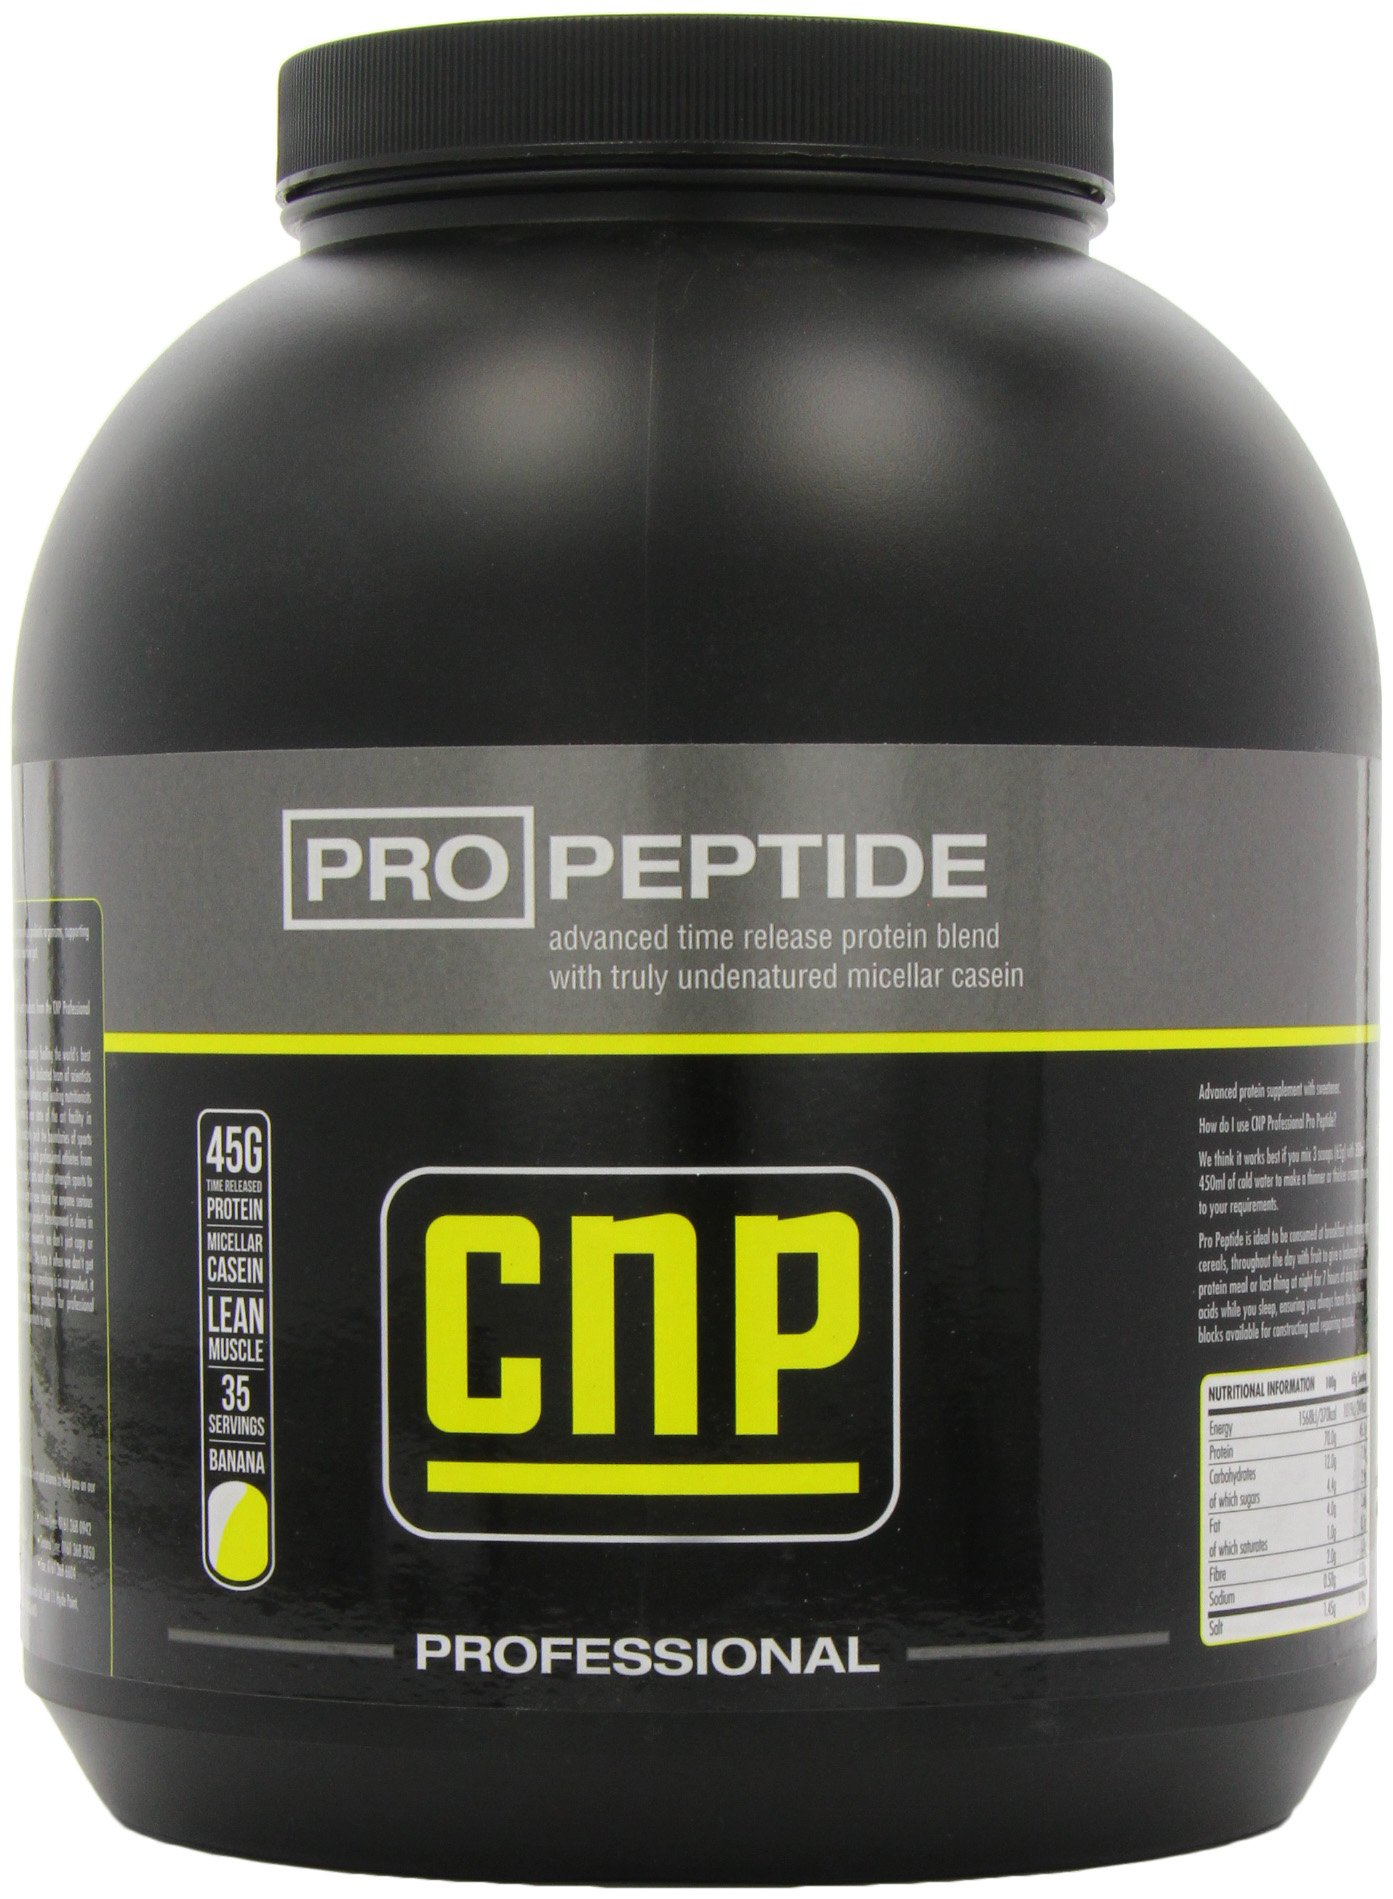 CNP Pro Peptide Banana Advanced Protein Powder Supplement 2.27 kg